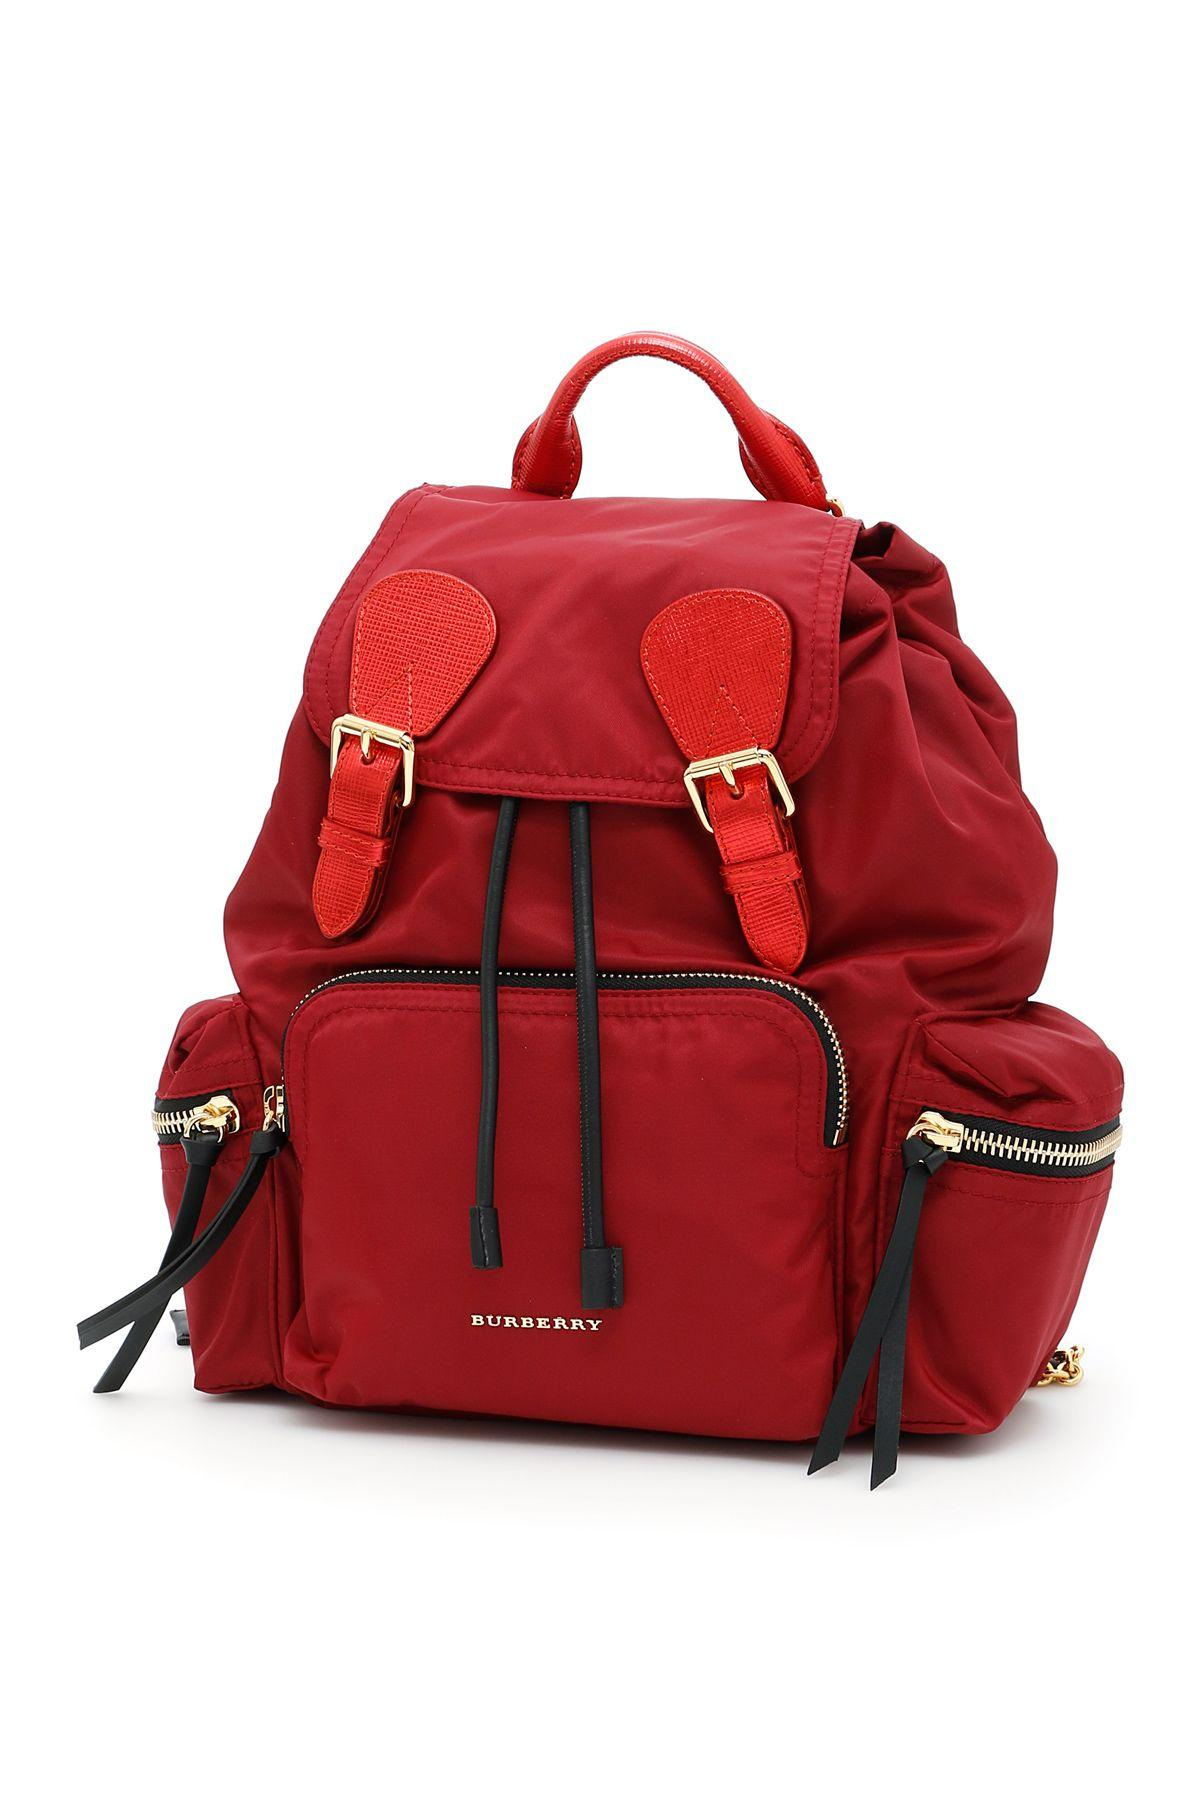 Burberry The Medium Rucksack In Crimson Red-crin Rednero